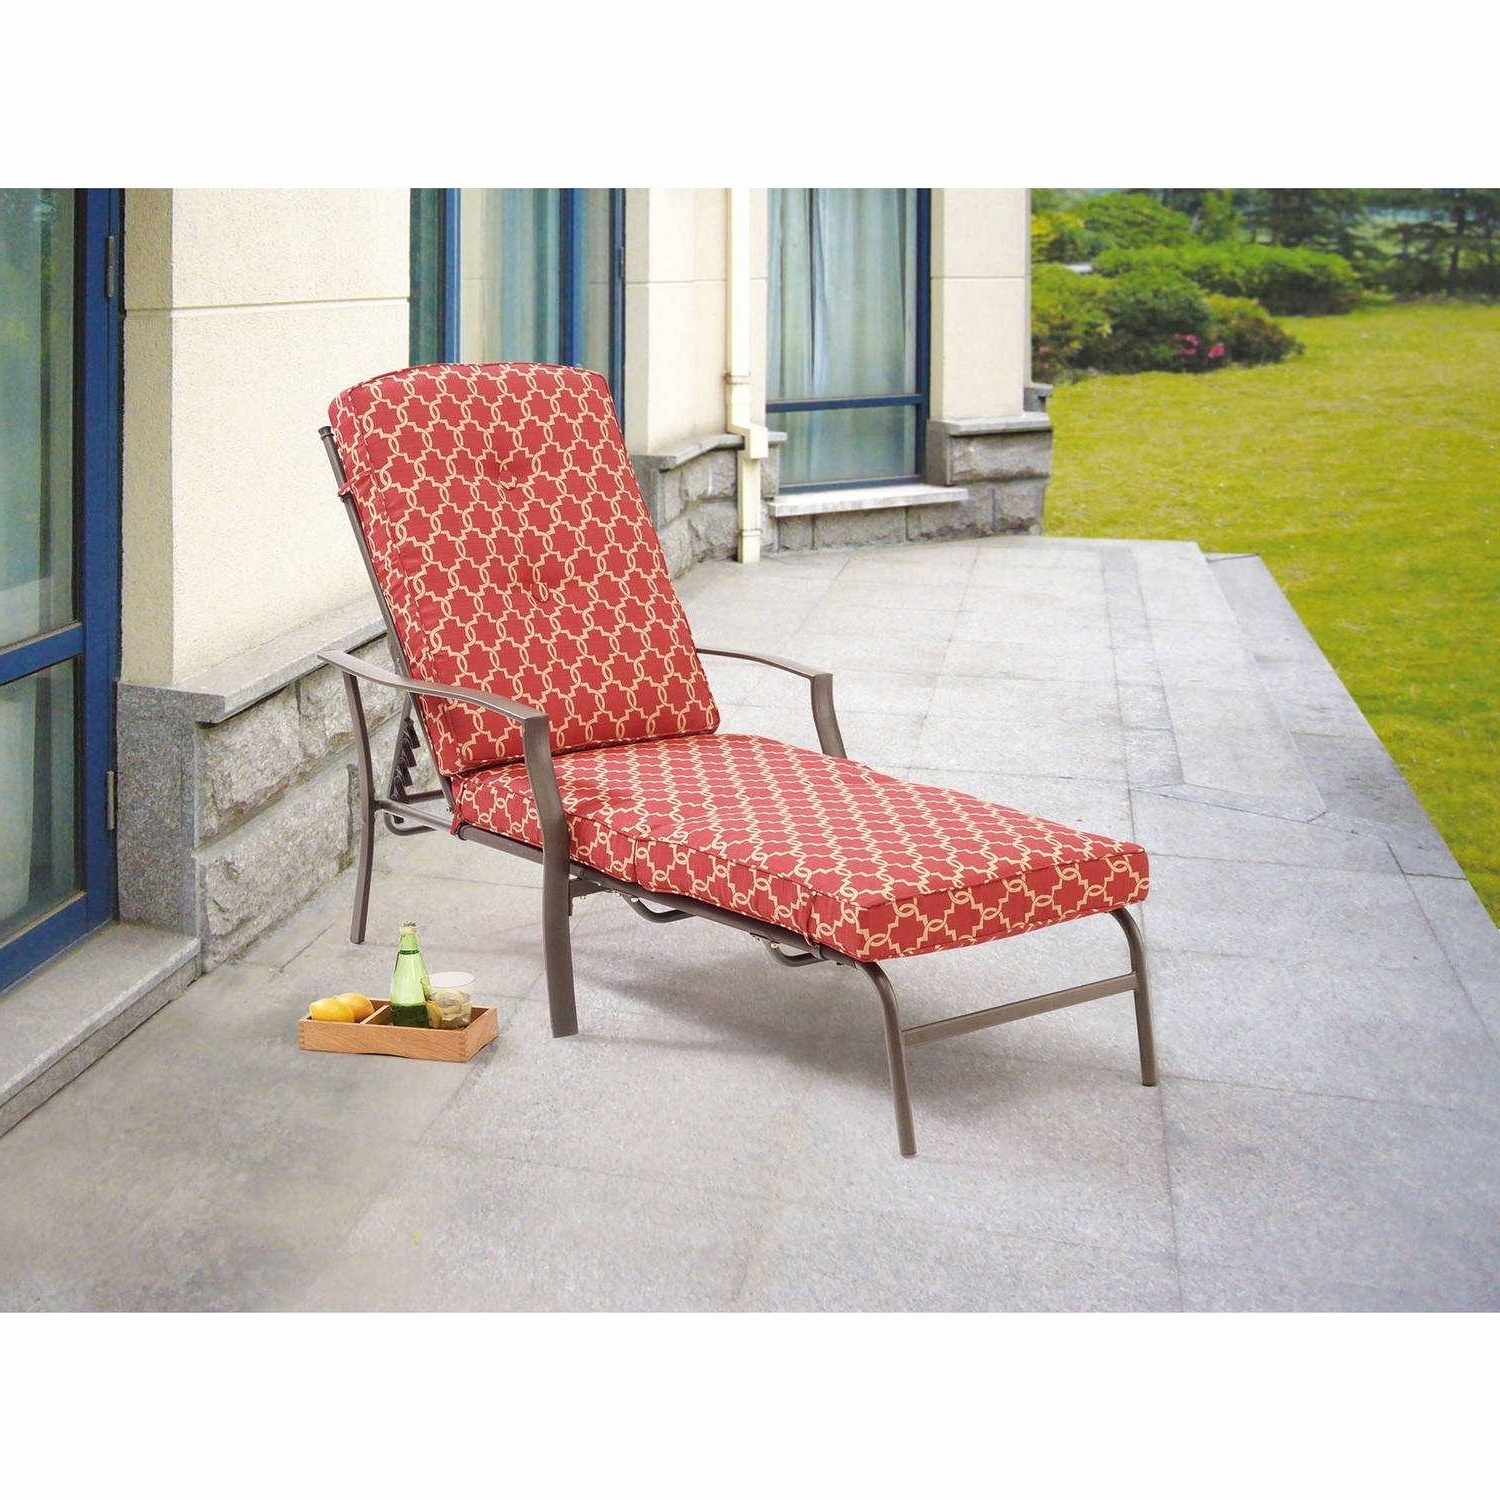 Well Liked Walmart Chaise Lounges Within 30 Inspirational Patio Chaise Lounge Chairs Pics (30 Photos (View 15 of 15)